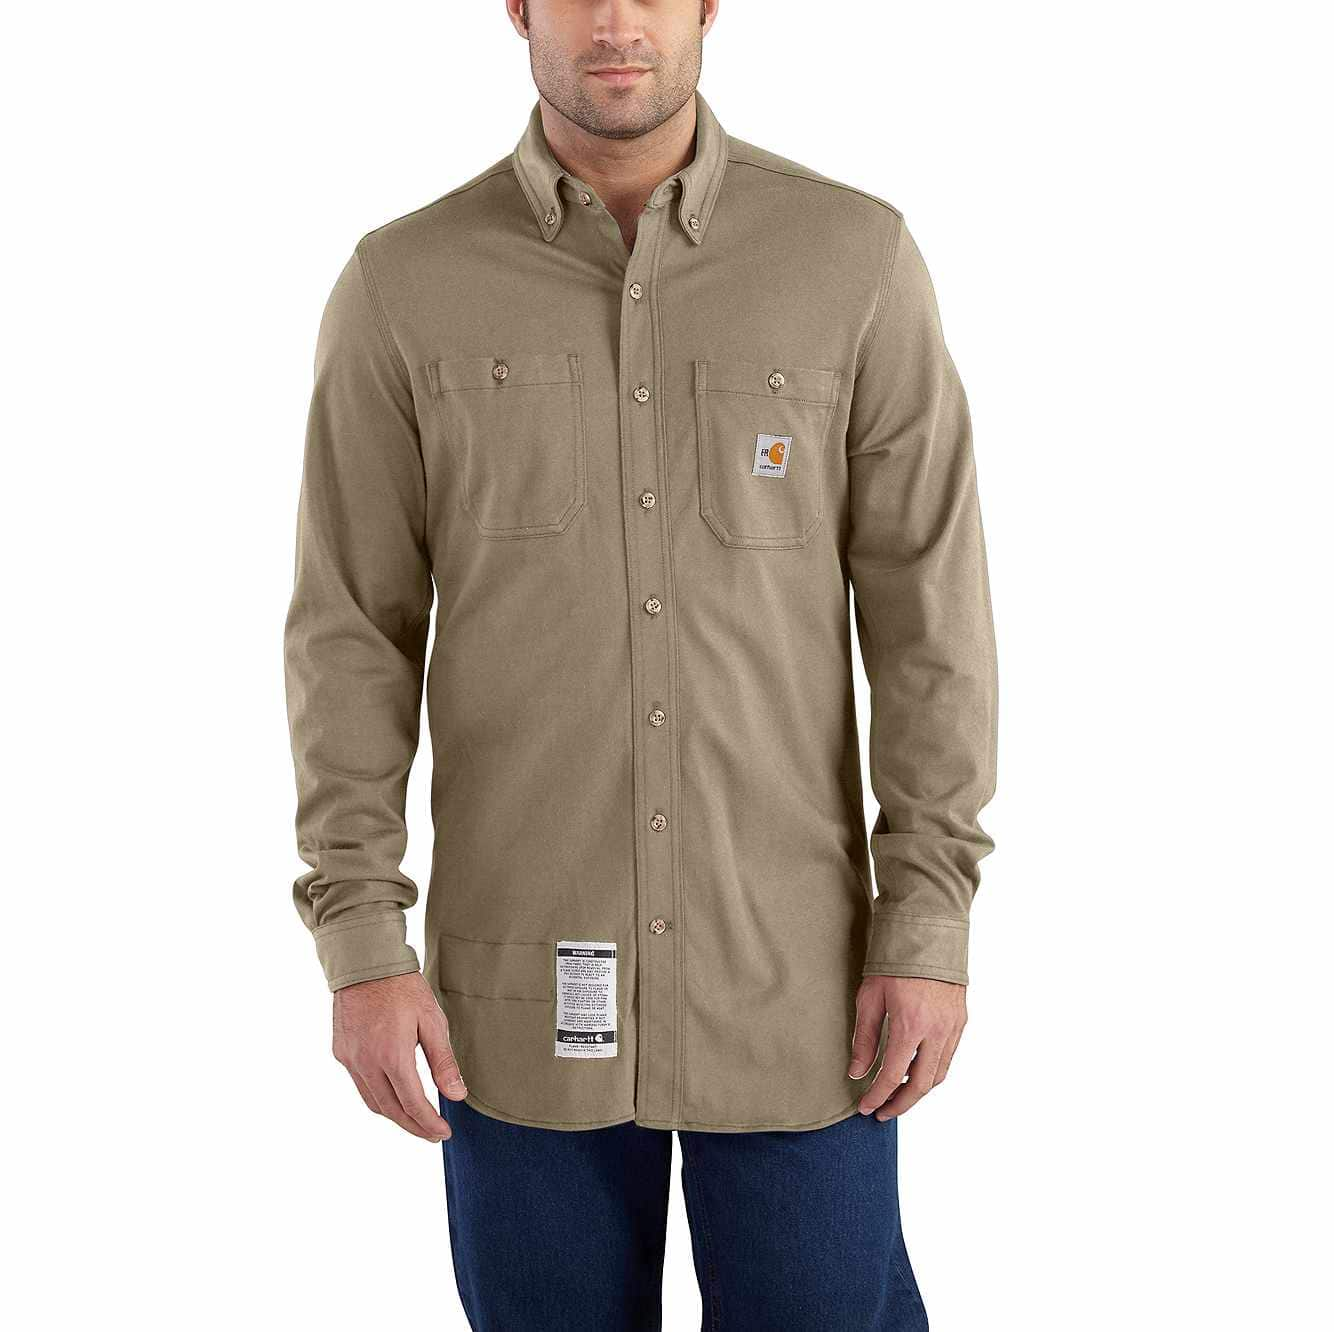 Picture of Flame-Resistant Carhartt Force® Cotton Hybrid Shirt in Khaki